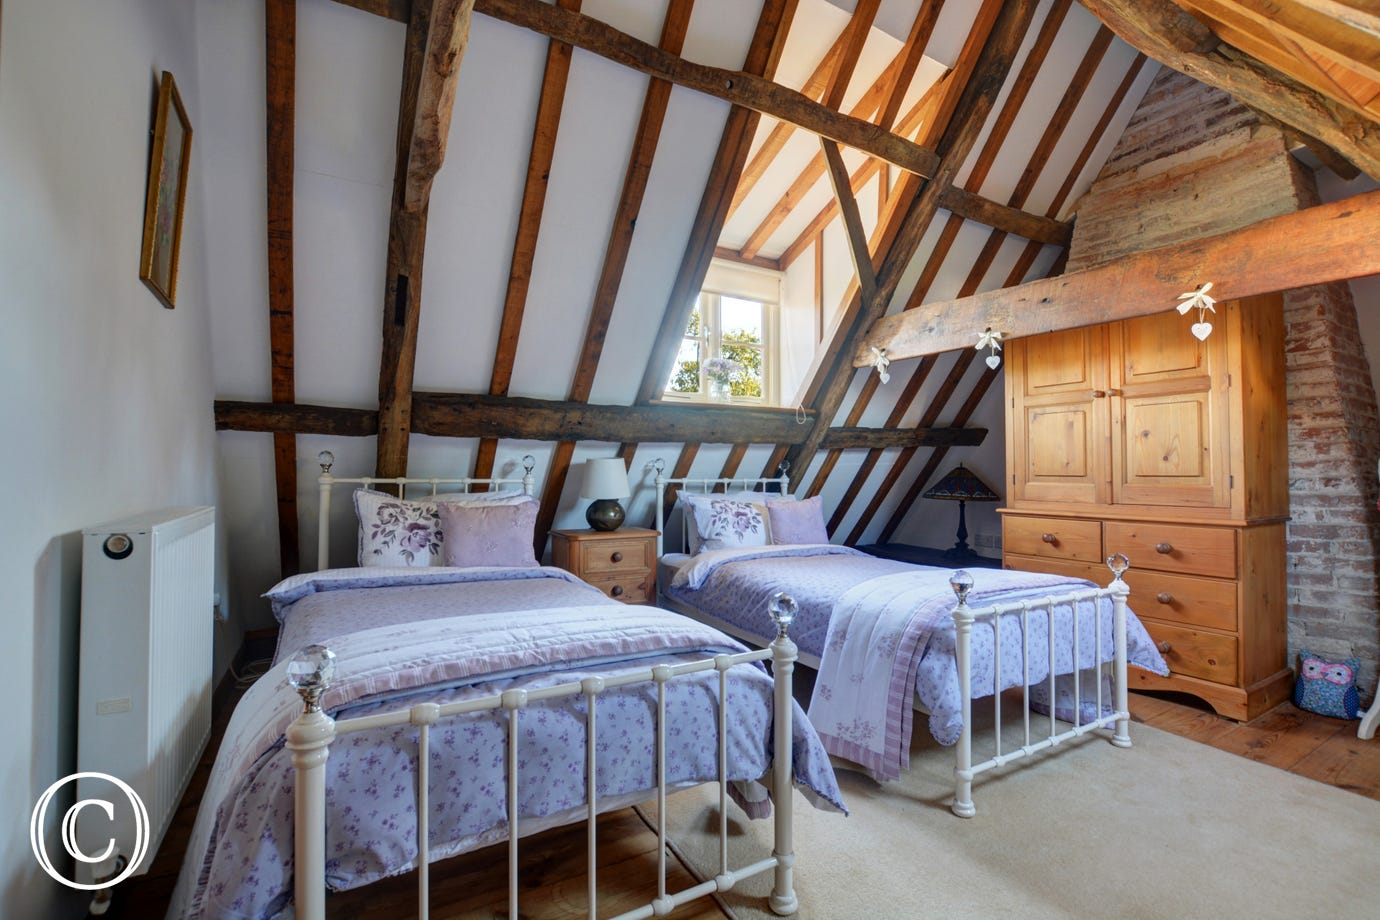 Super double bedroom with twin beds, exposed brickwork and character beams